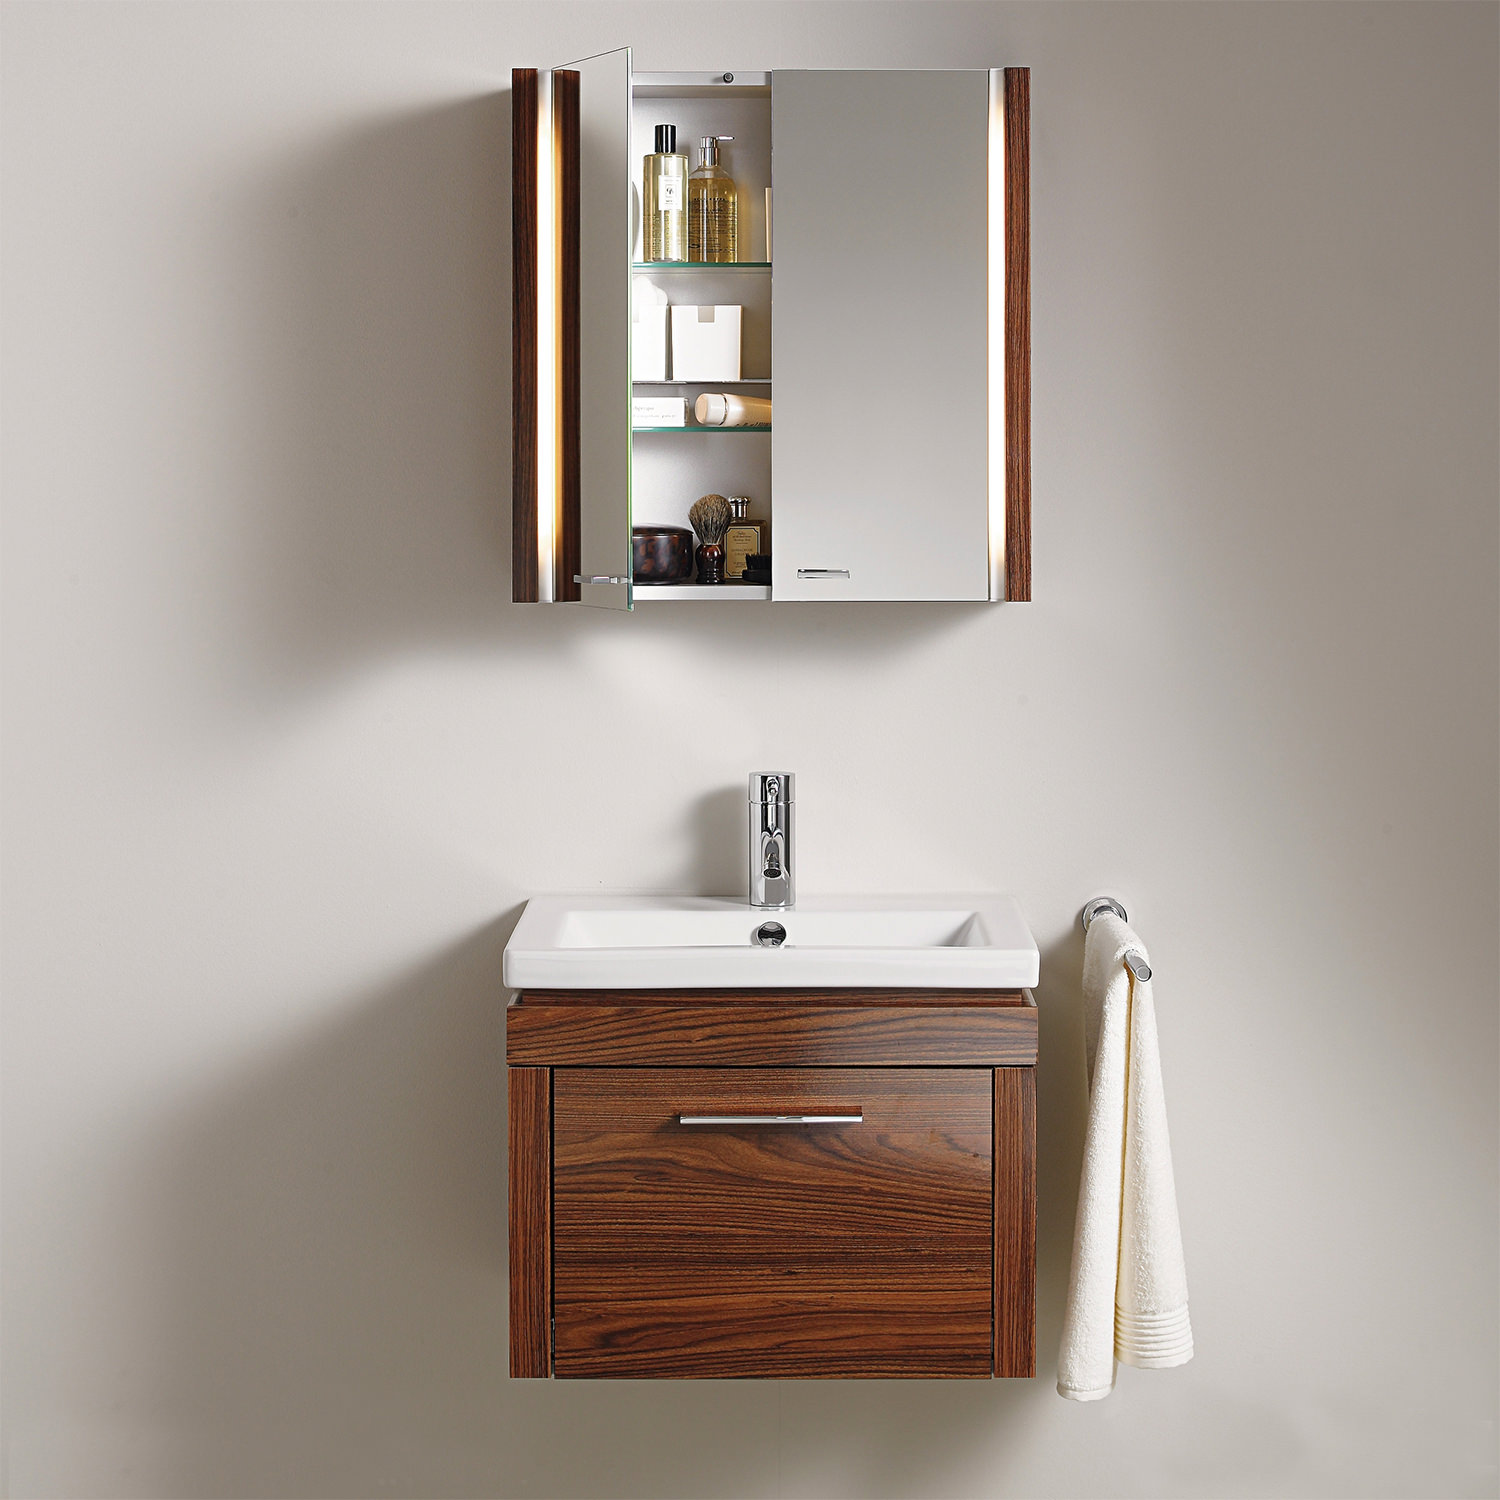 Duravit 2nd floor 600mm mirror cabinet with lighting 2f 9651 for Bathroom cabinets 600mm